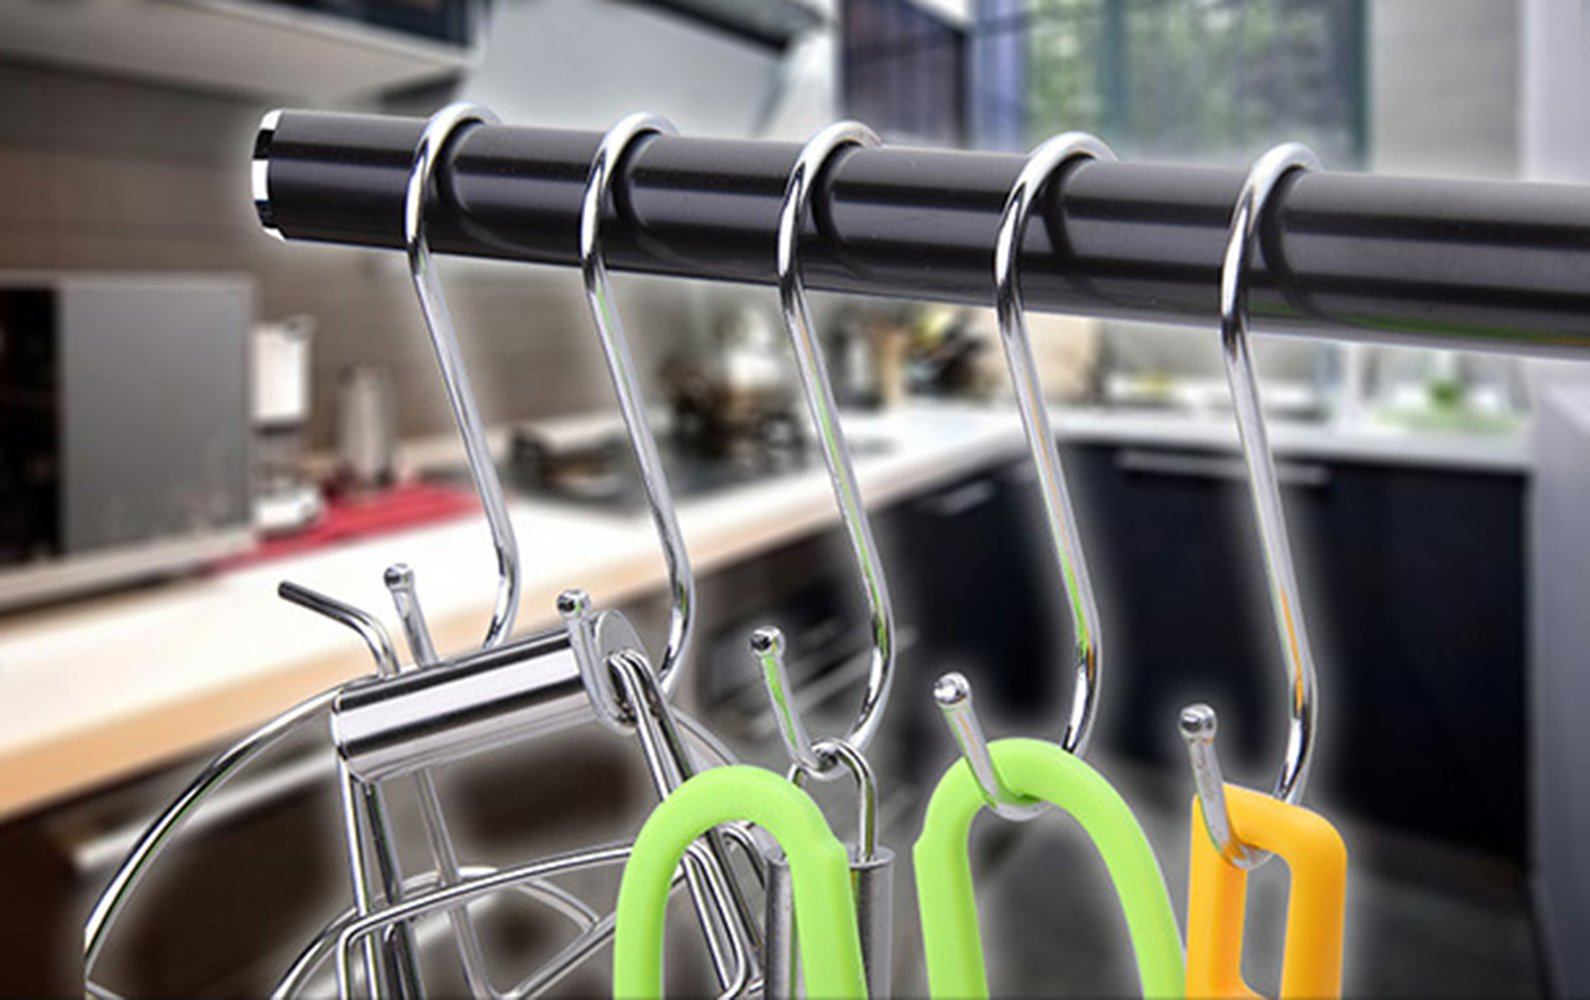 Giantstar 20 Pack  Heavy Duty S Hooks Kitchen Pot Pan Hanger Clothes Storage Rack Size:Large (20pcs/L) by Giant star (Image #4)